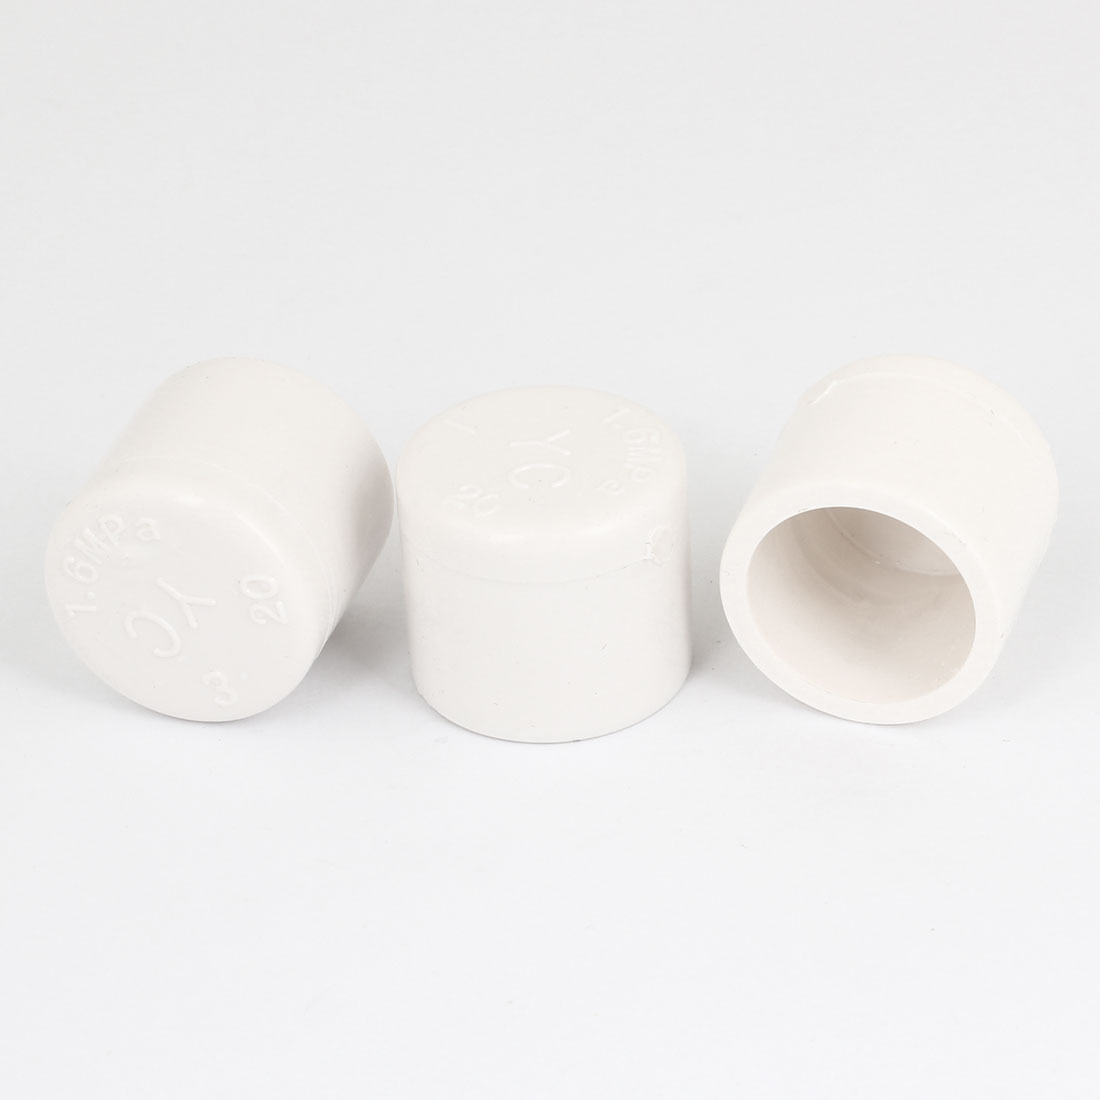 20mm Inner Dia White PVC Hose Tube End Fitting Adapter Caps 3PCS